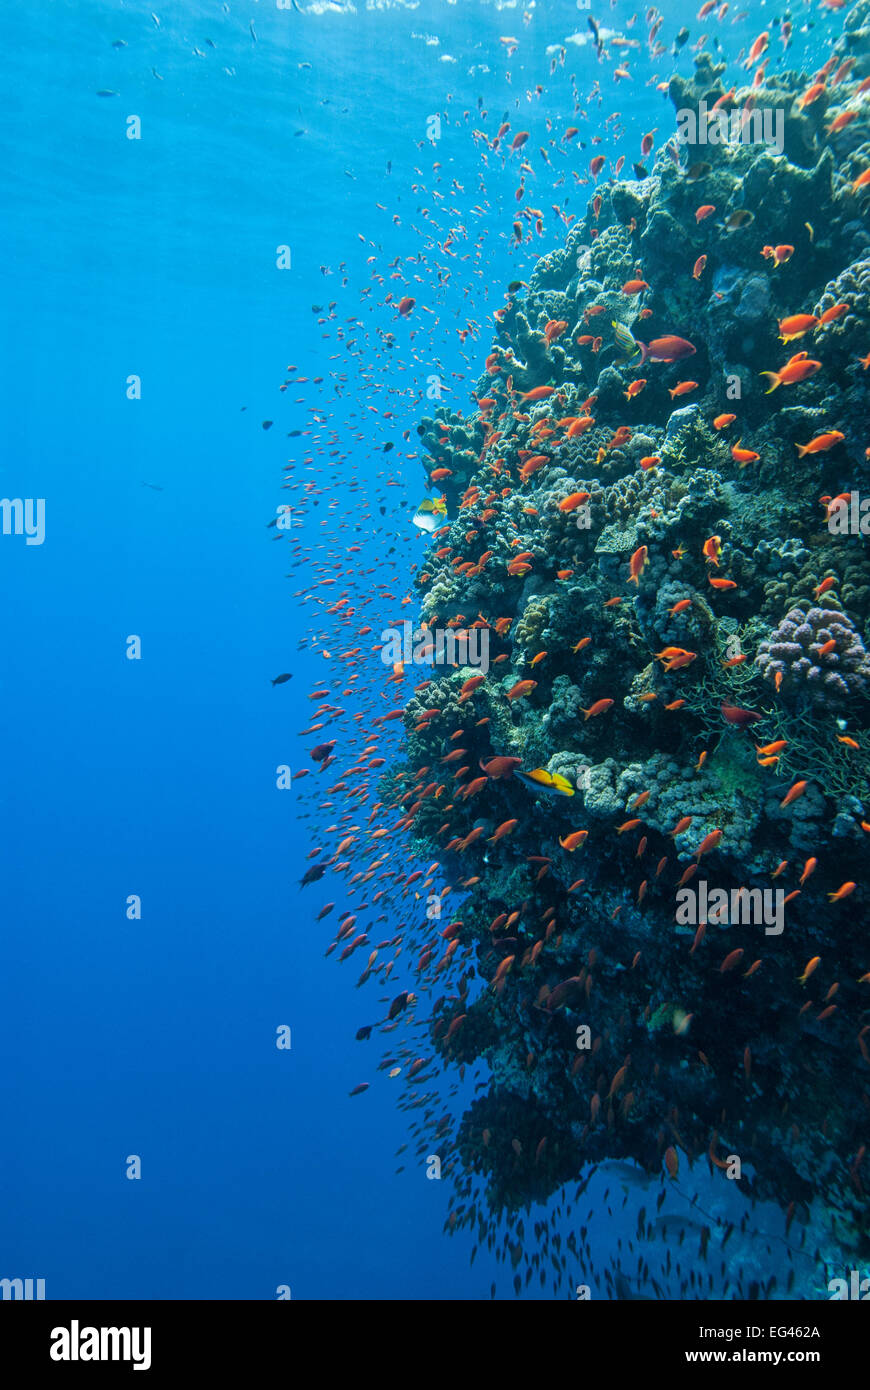 Coral wall Anthiinae schooling fish Red Sea - Stock Image